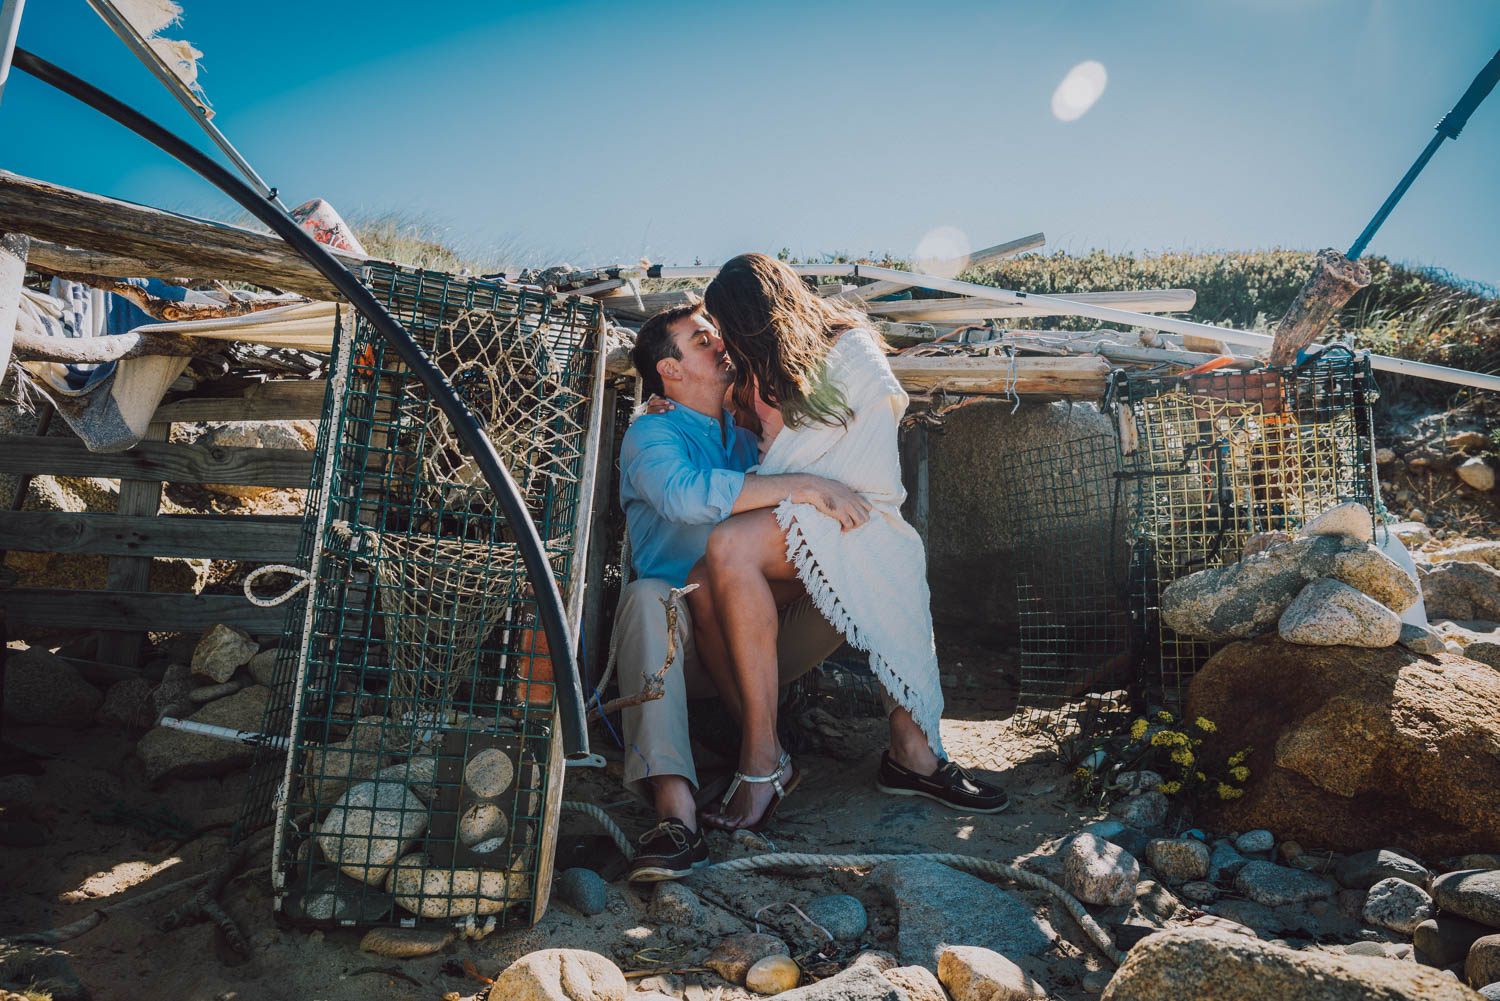 maureen-evan-maureen-engagement-photography-62.jpg